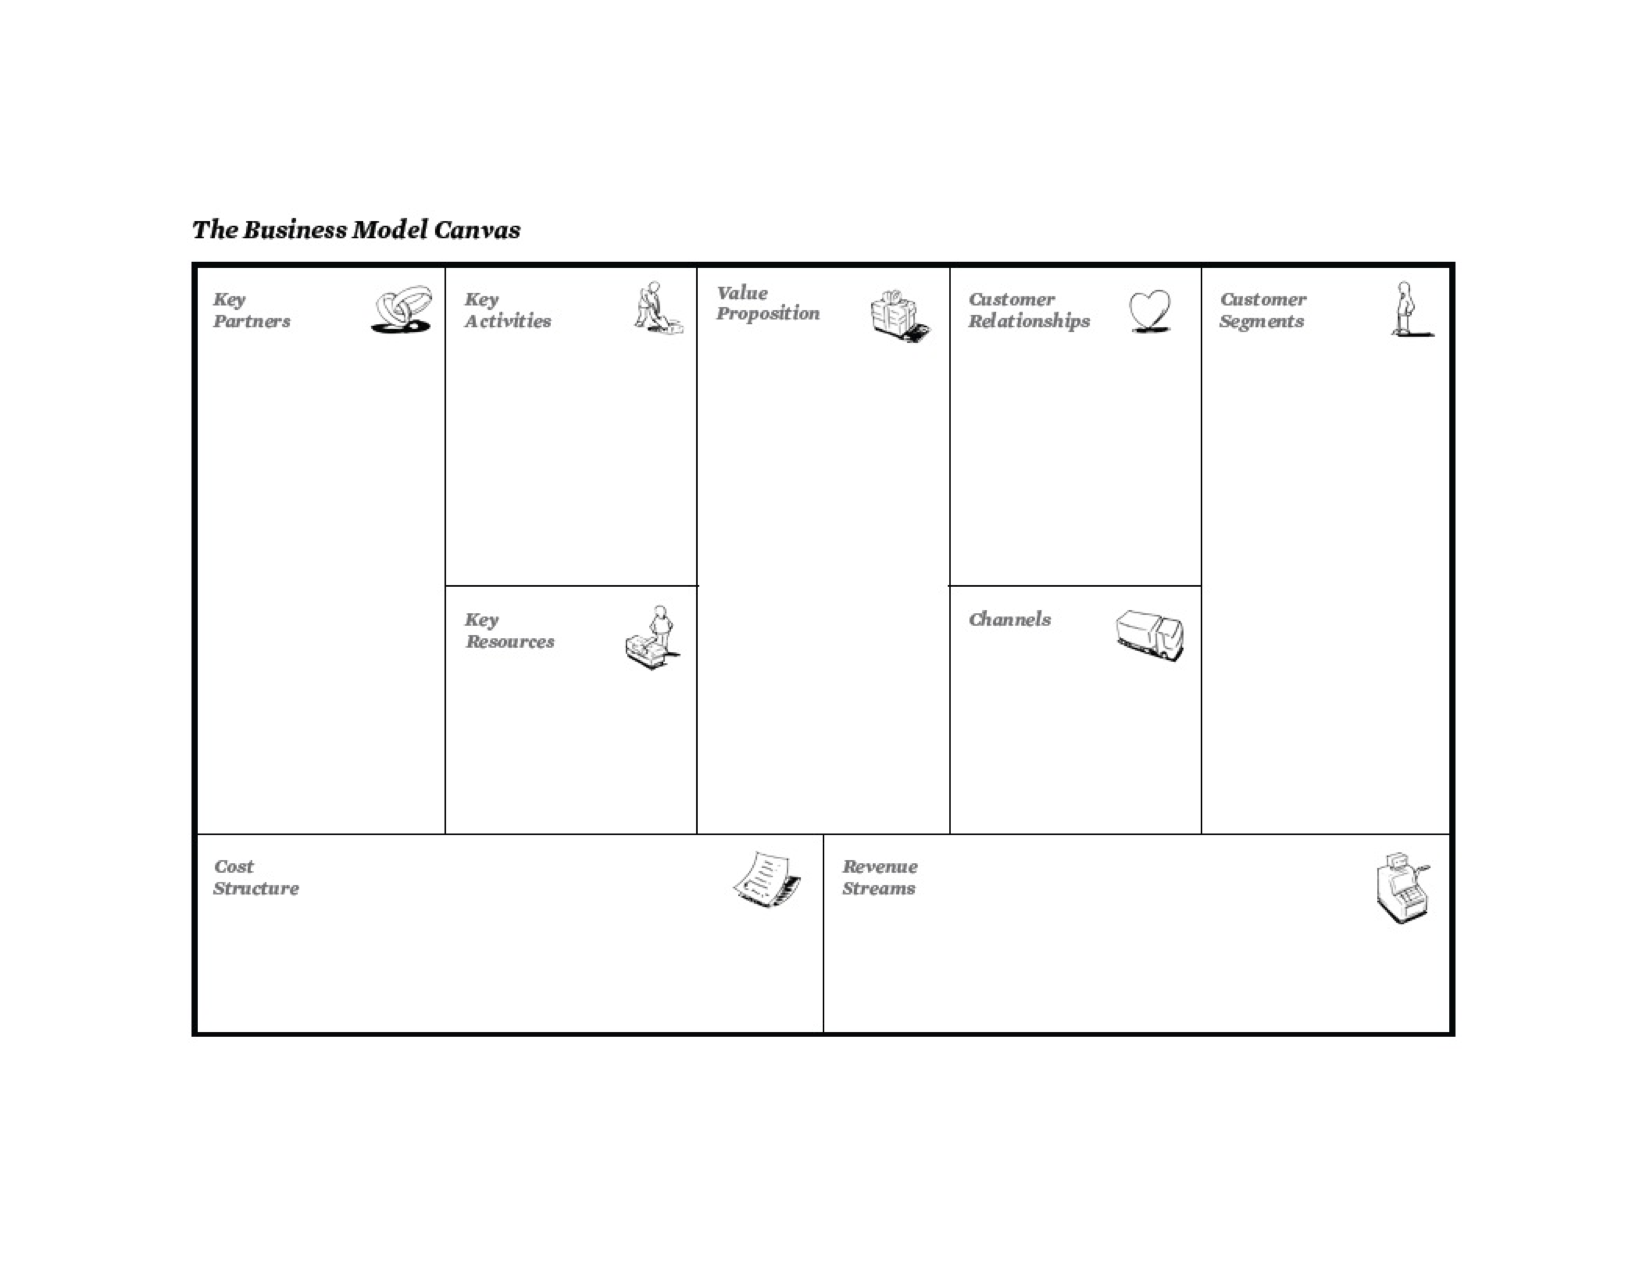 Why apply business models to startups venture for all we will spend more time with this concept after taking a look at the alexander osterwalder and yves pigneurs business model canvas bmc cheaphphosting Gallery